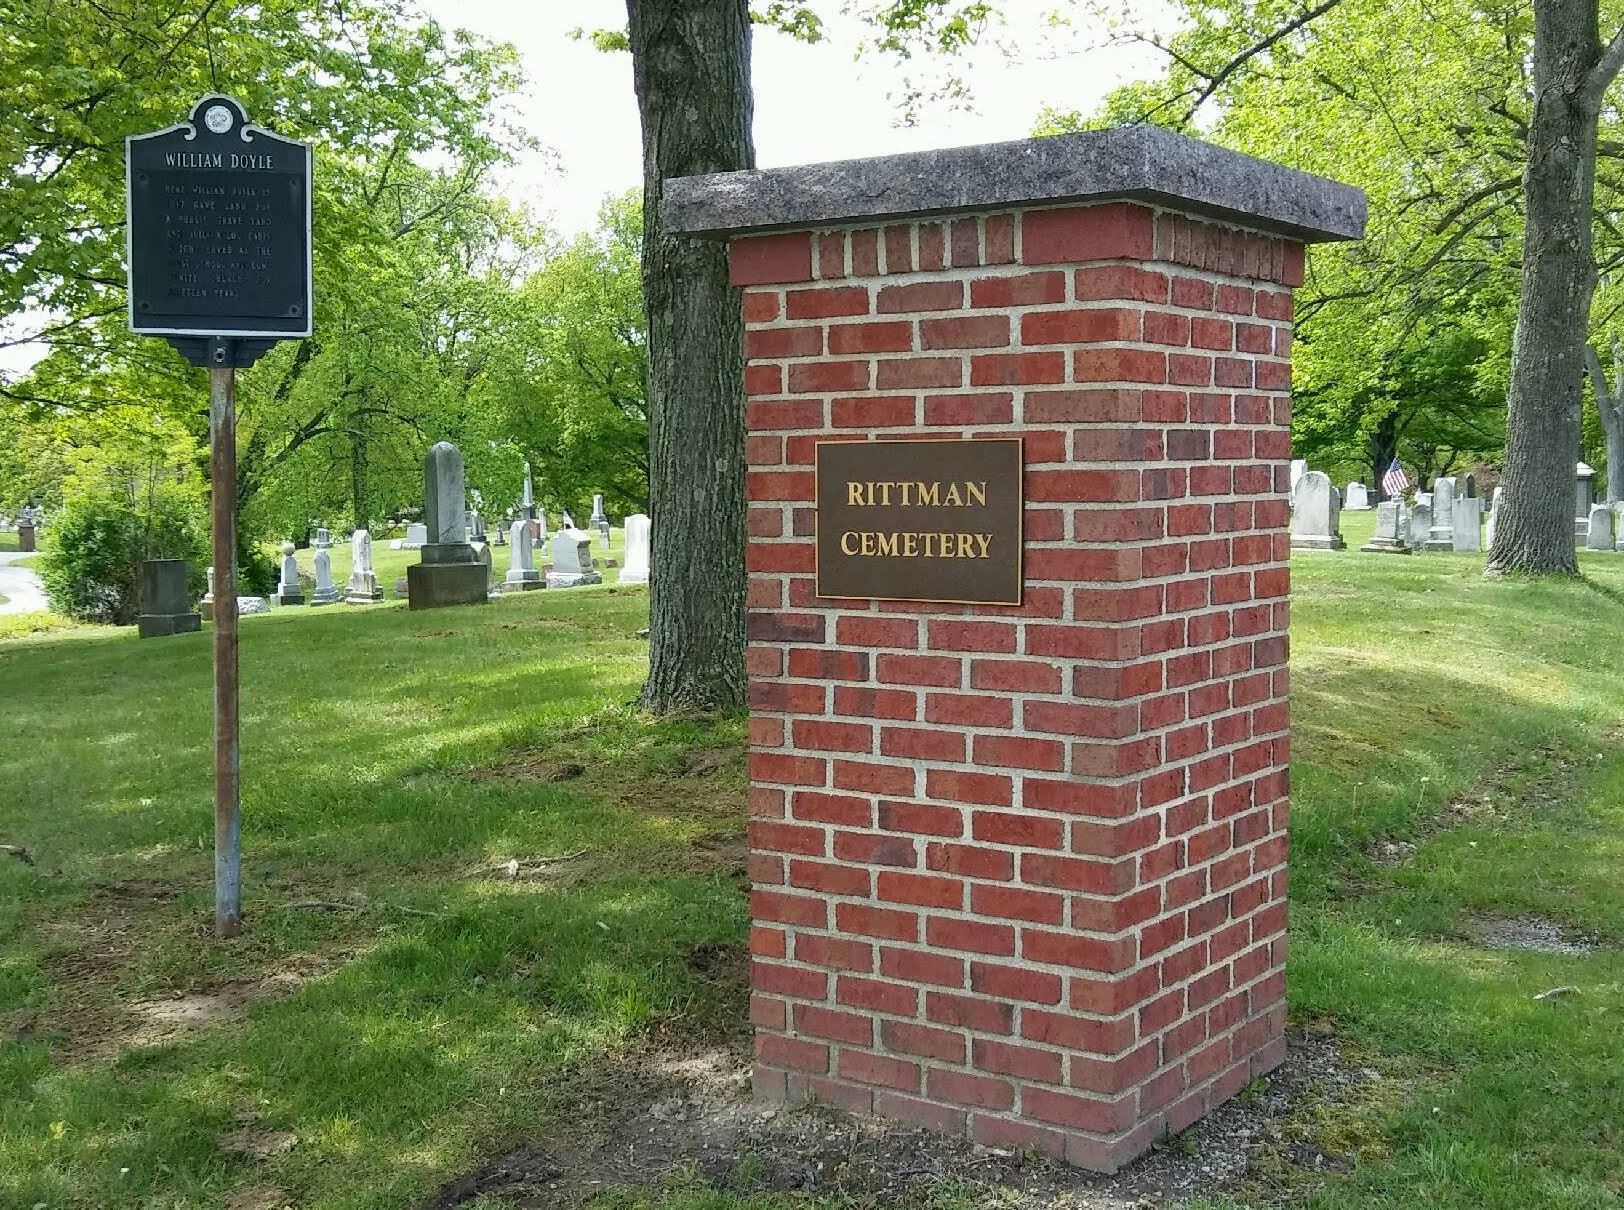 RED BRICK PILLAR CEMETERY ENTER